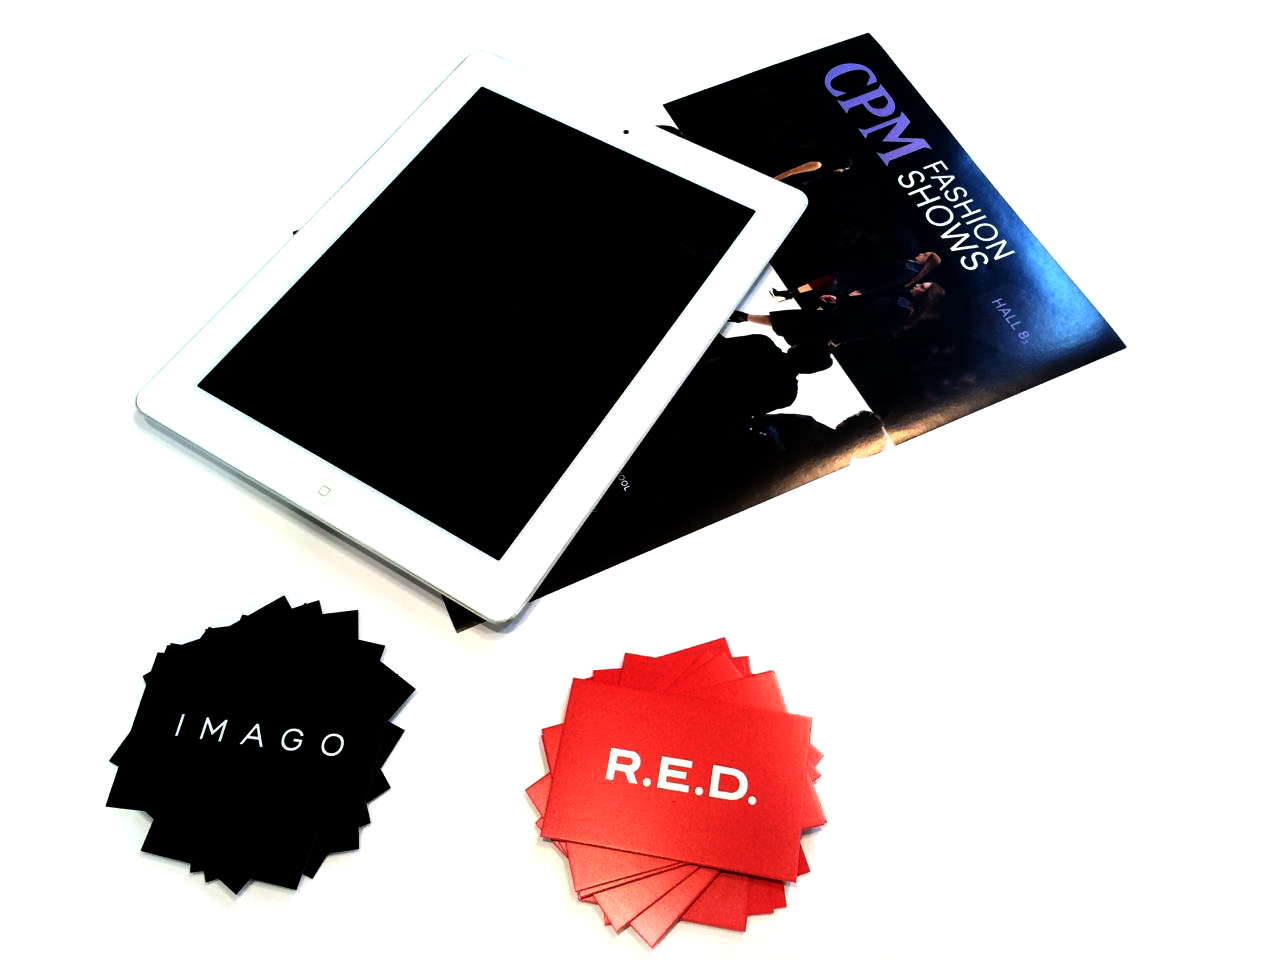 IPad, Imago, RED